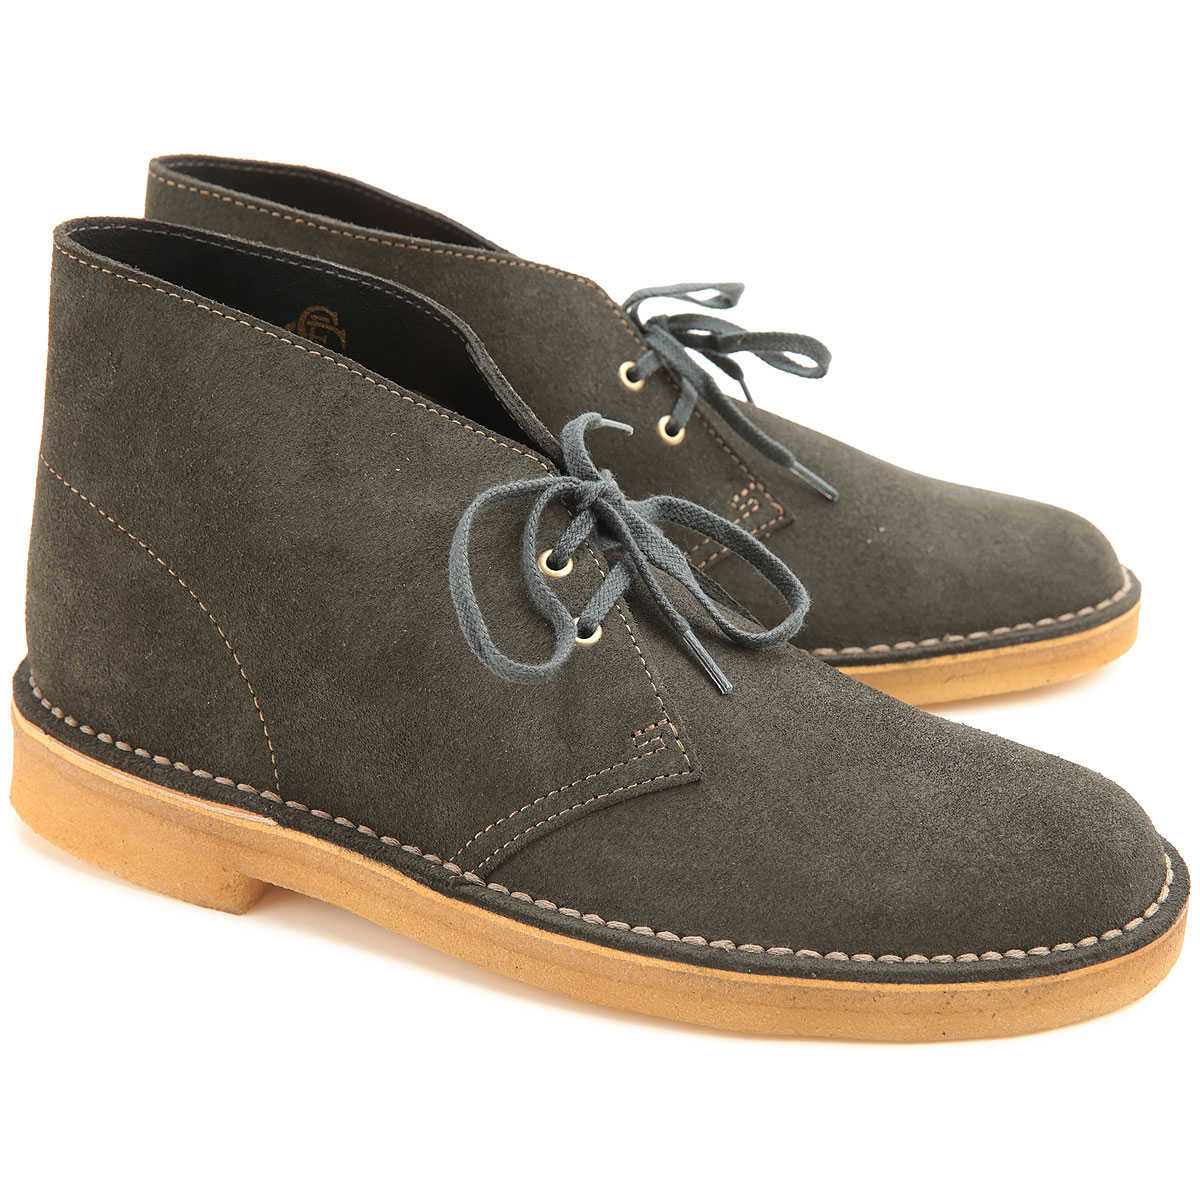 Clarks Boots for Men Booties On Sale USA - GOOFASH